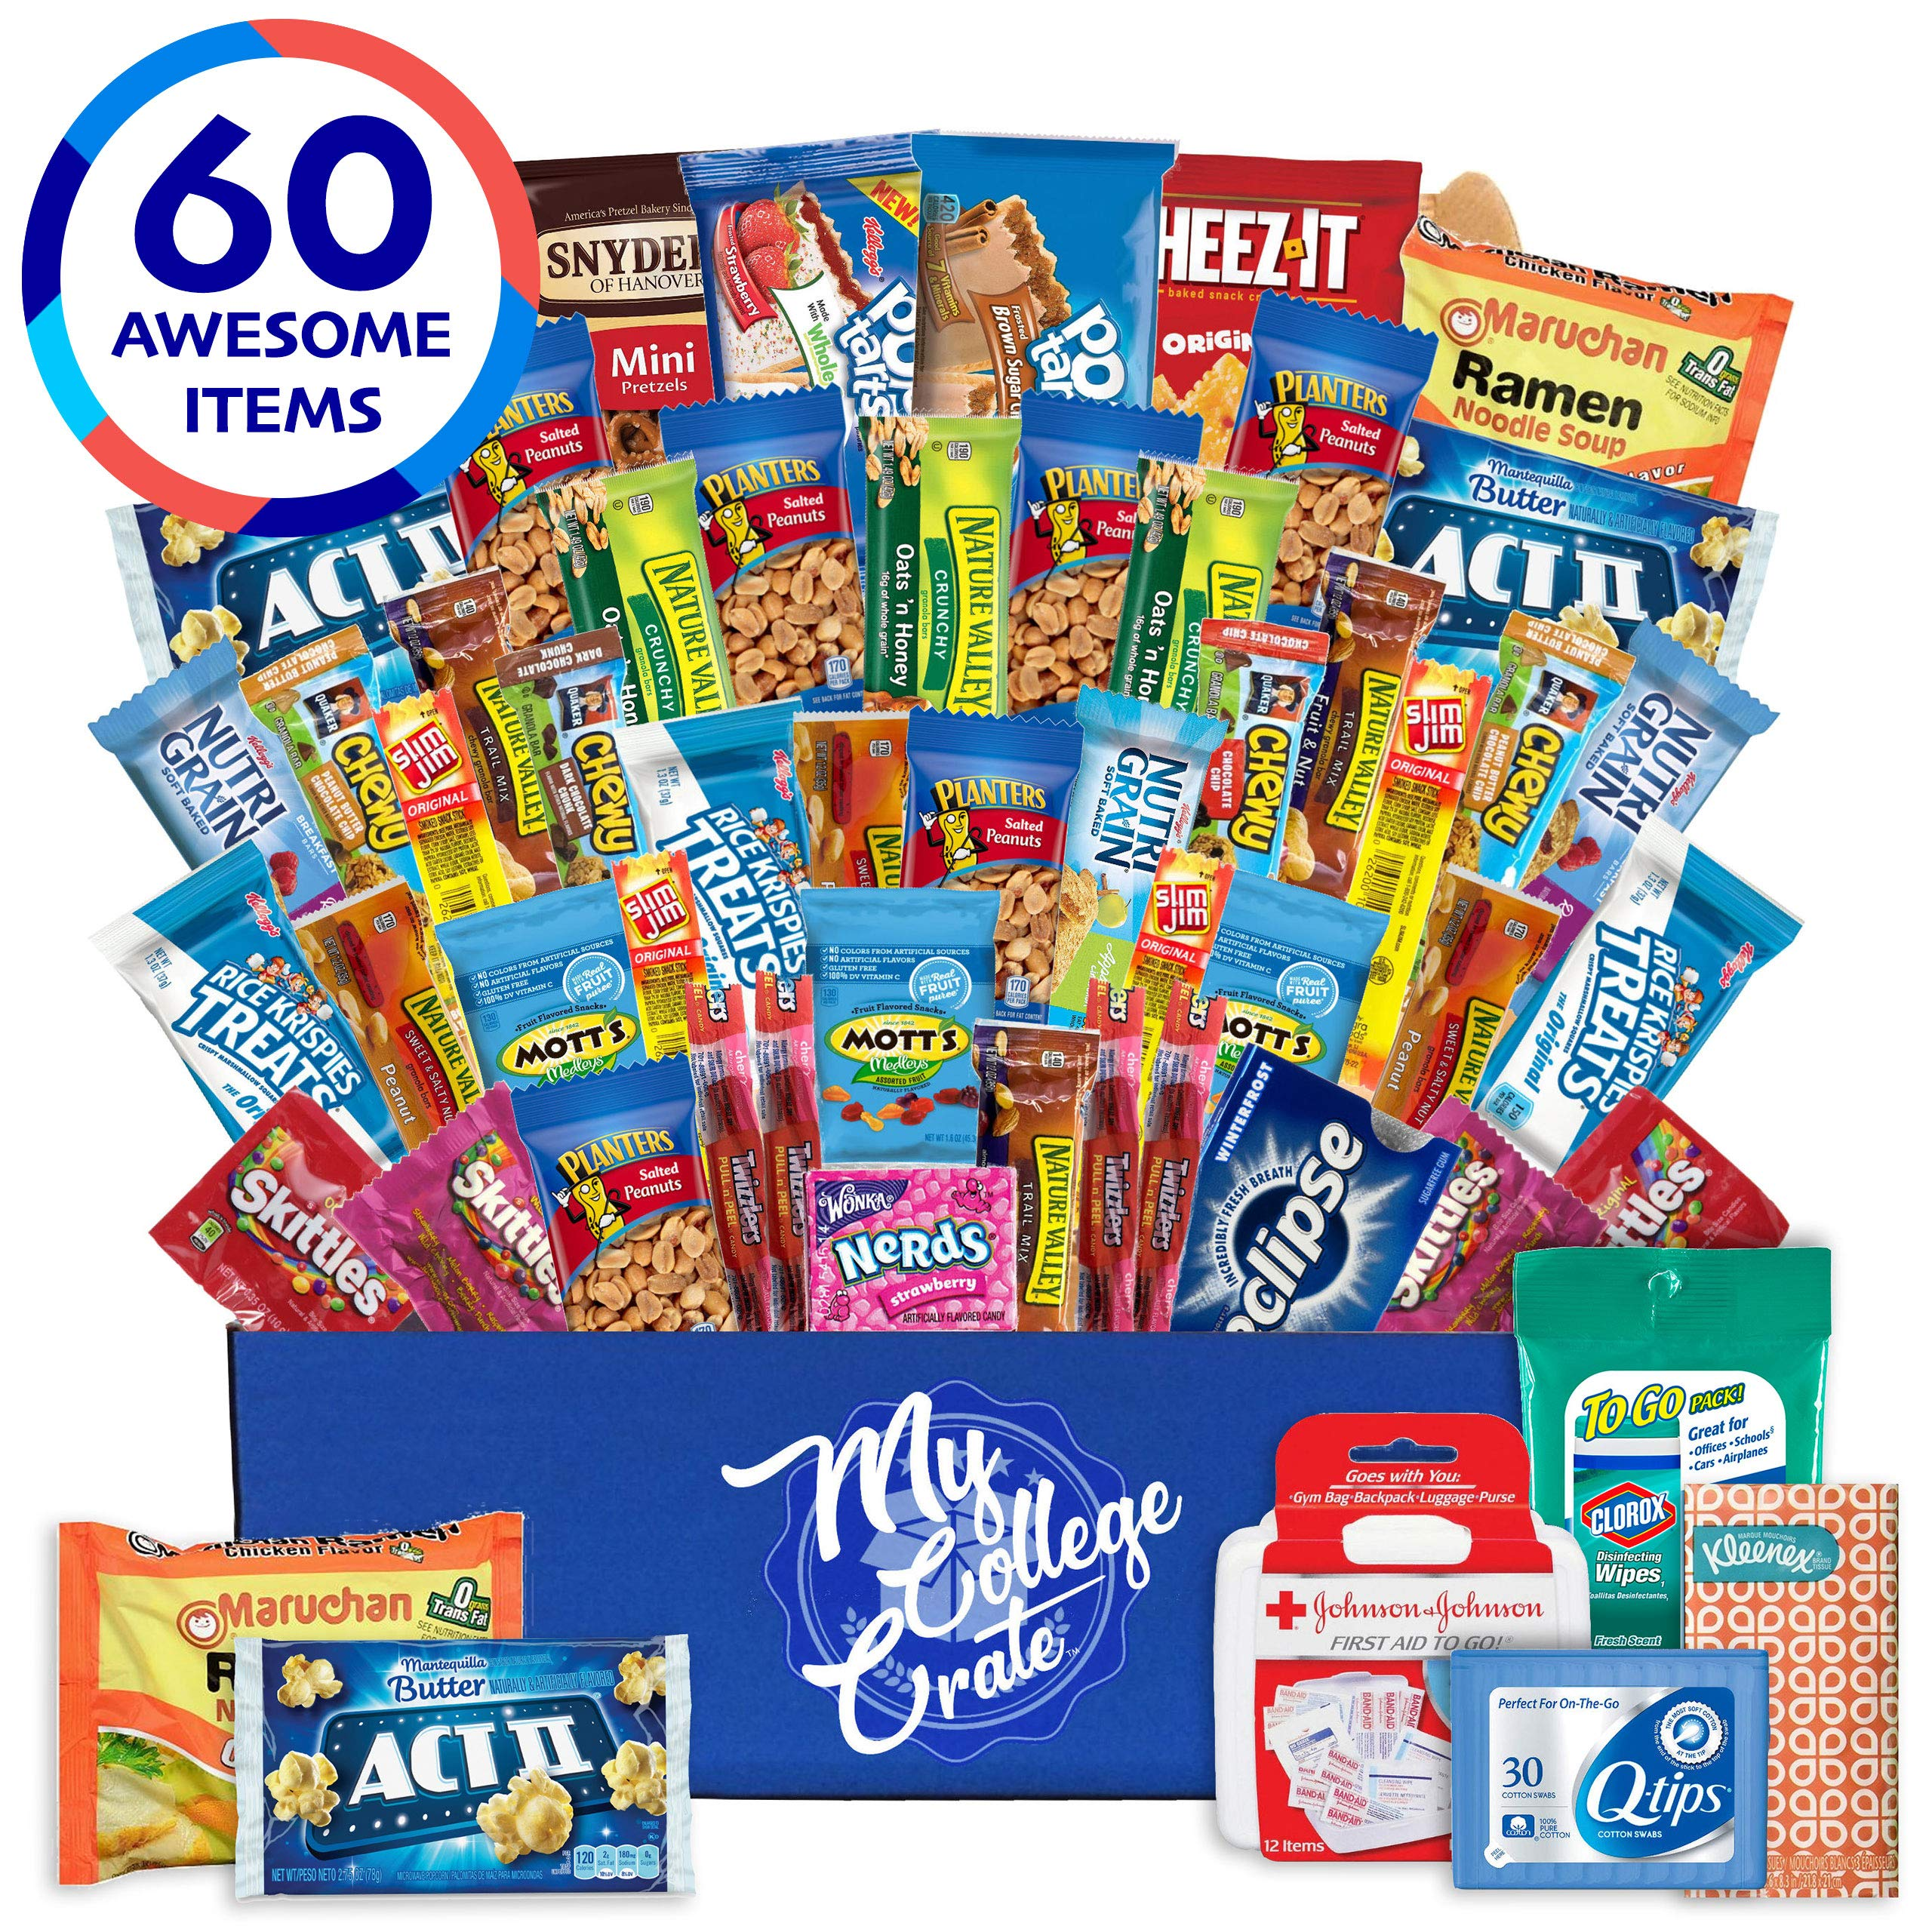 My College Crate Large Ultimate Snack Care Package for College Students - Variety Assortment of Cookies, Chips & Candies - 60 Snacks includes 5 Personal Care Items - The Original College Survival Kit